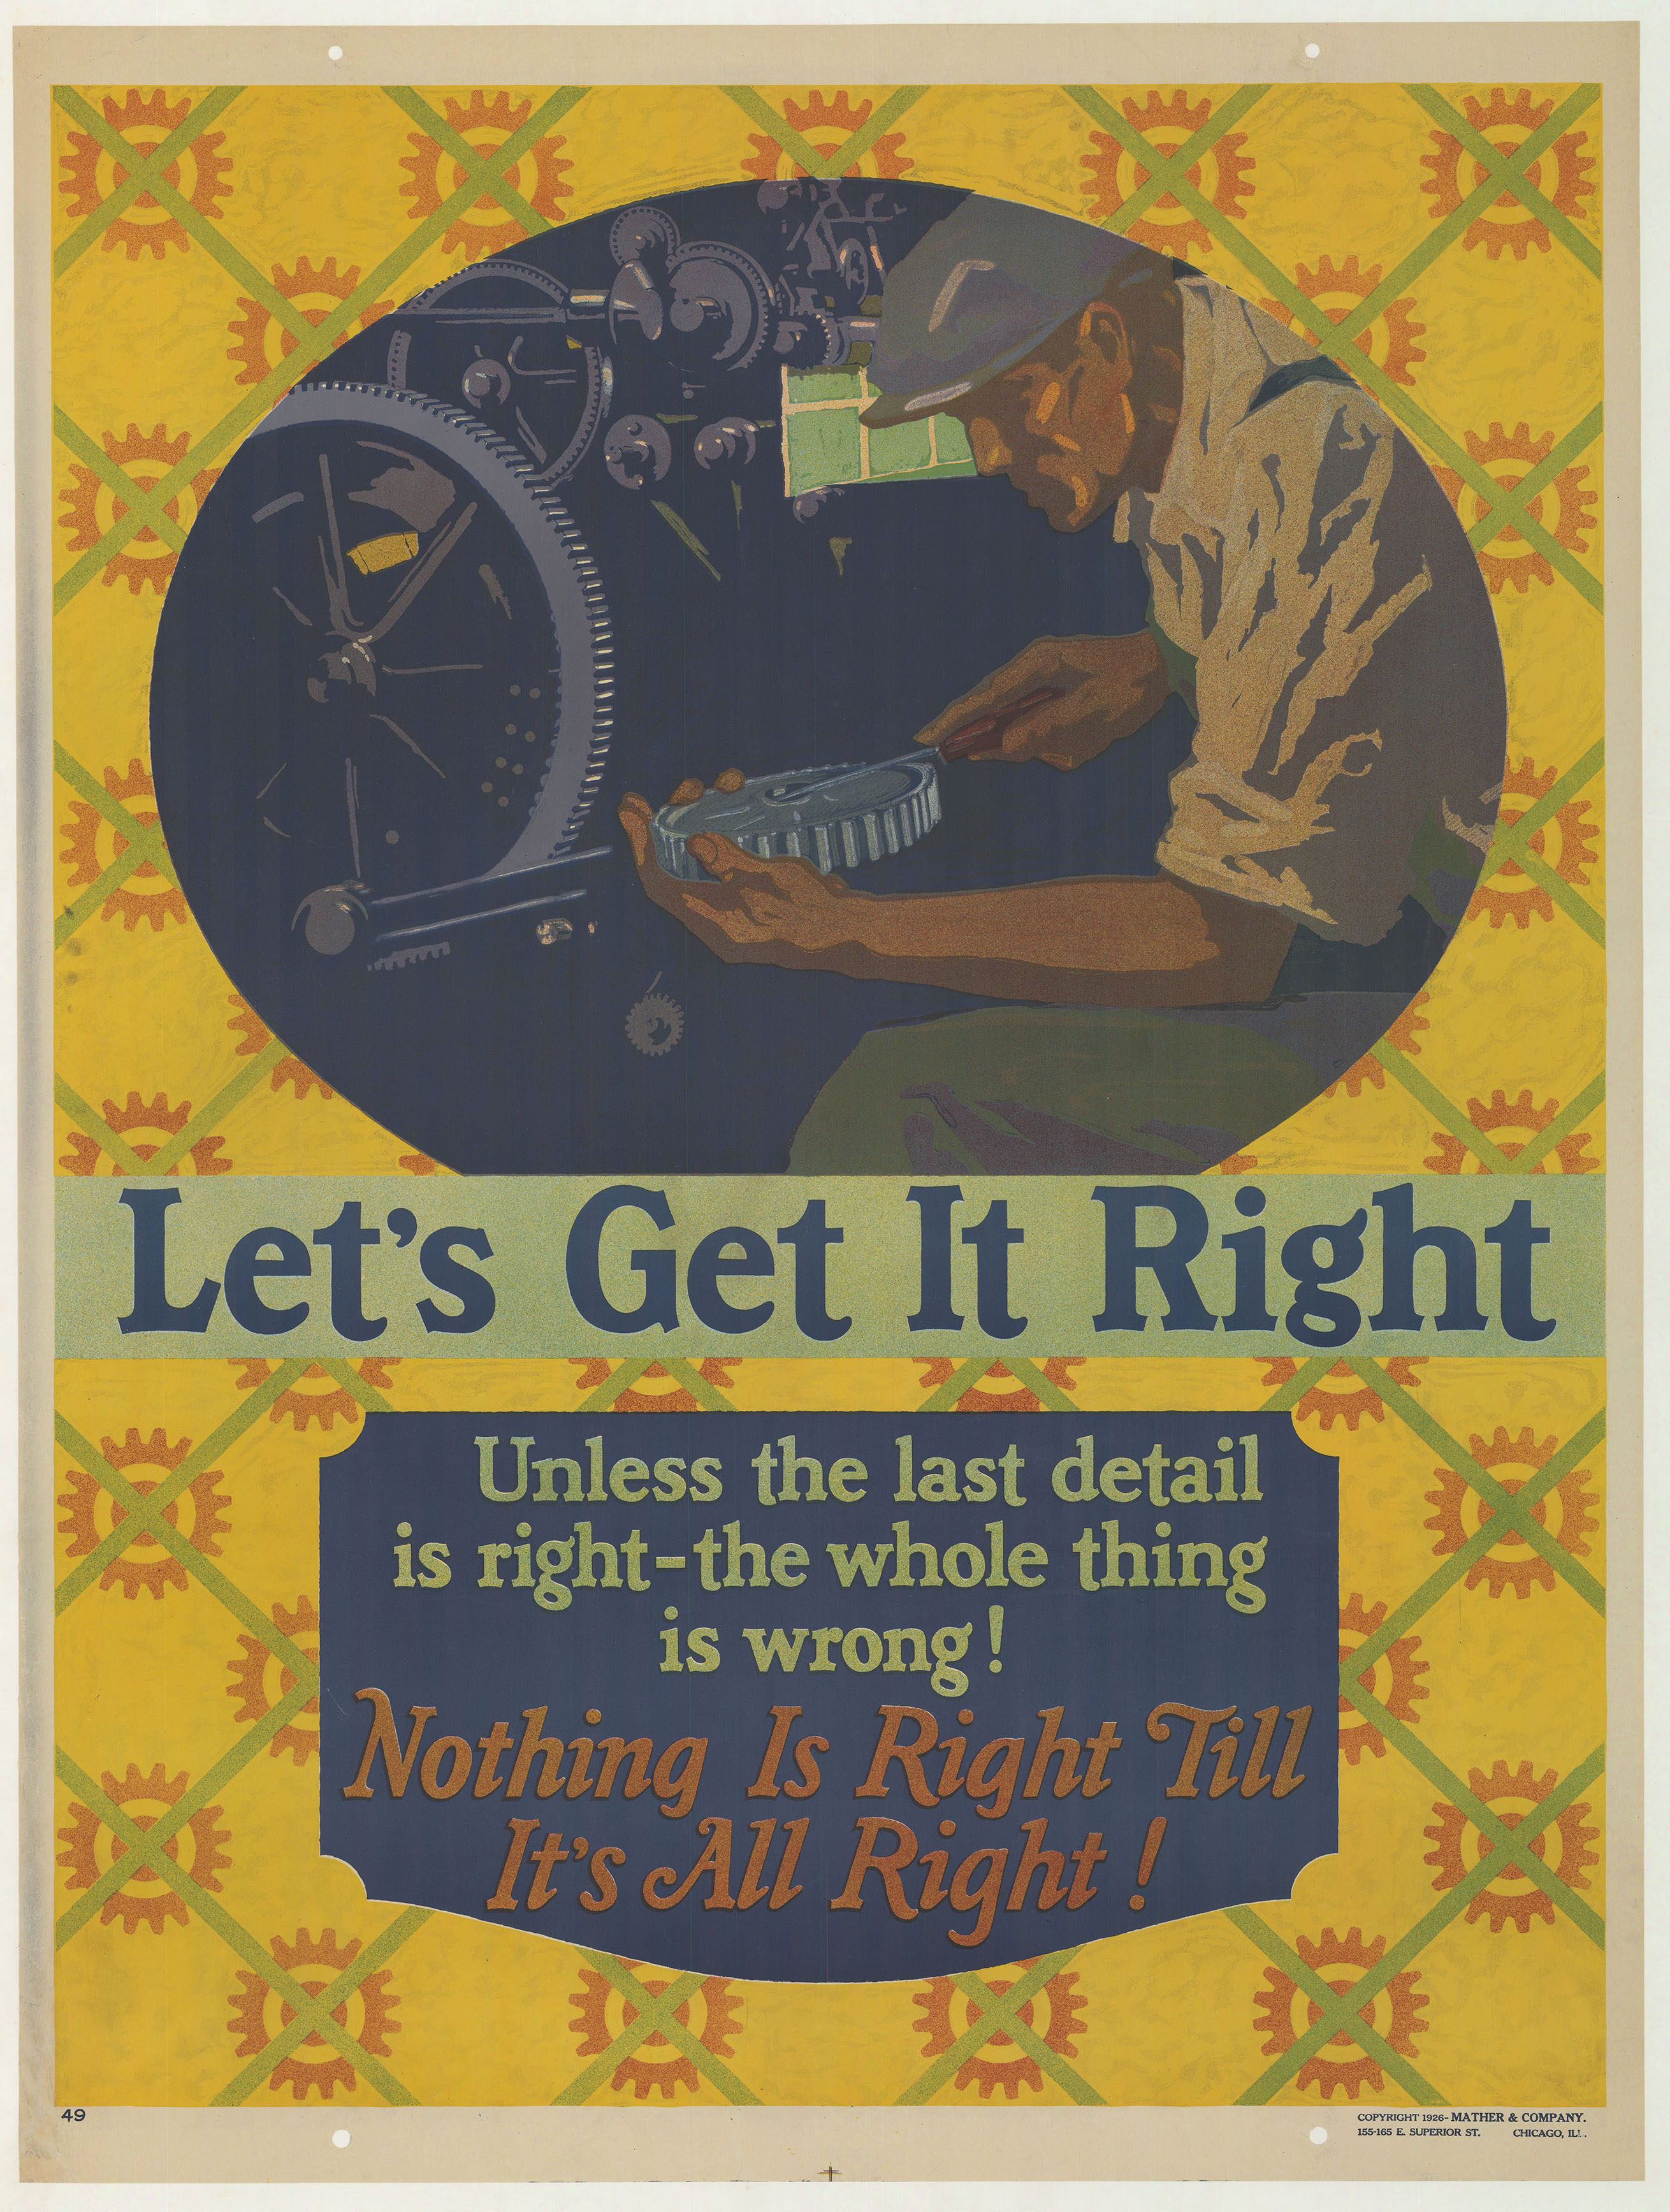 Get it Right motivational poster